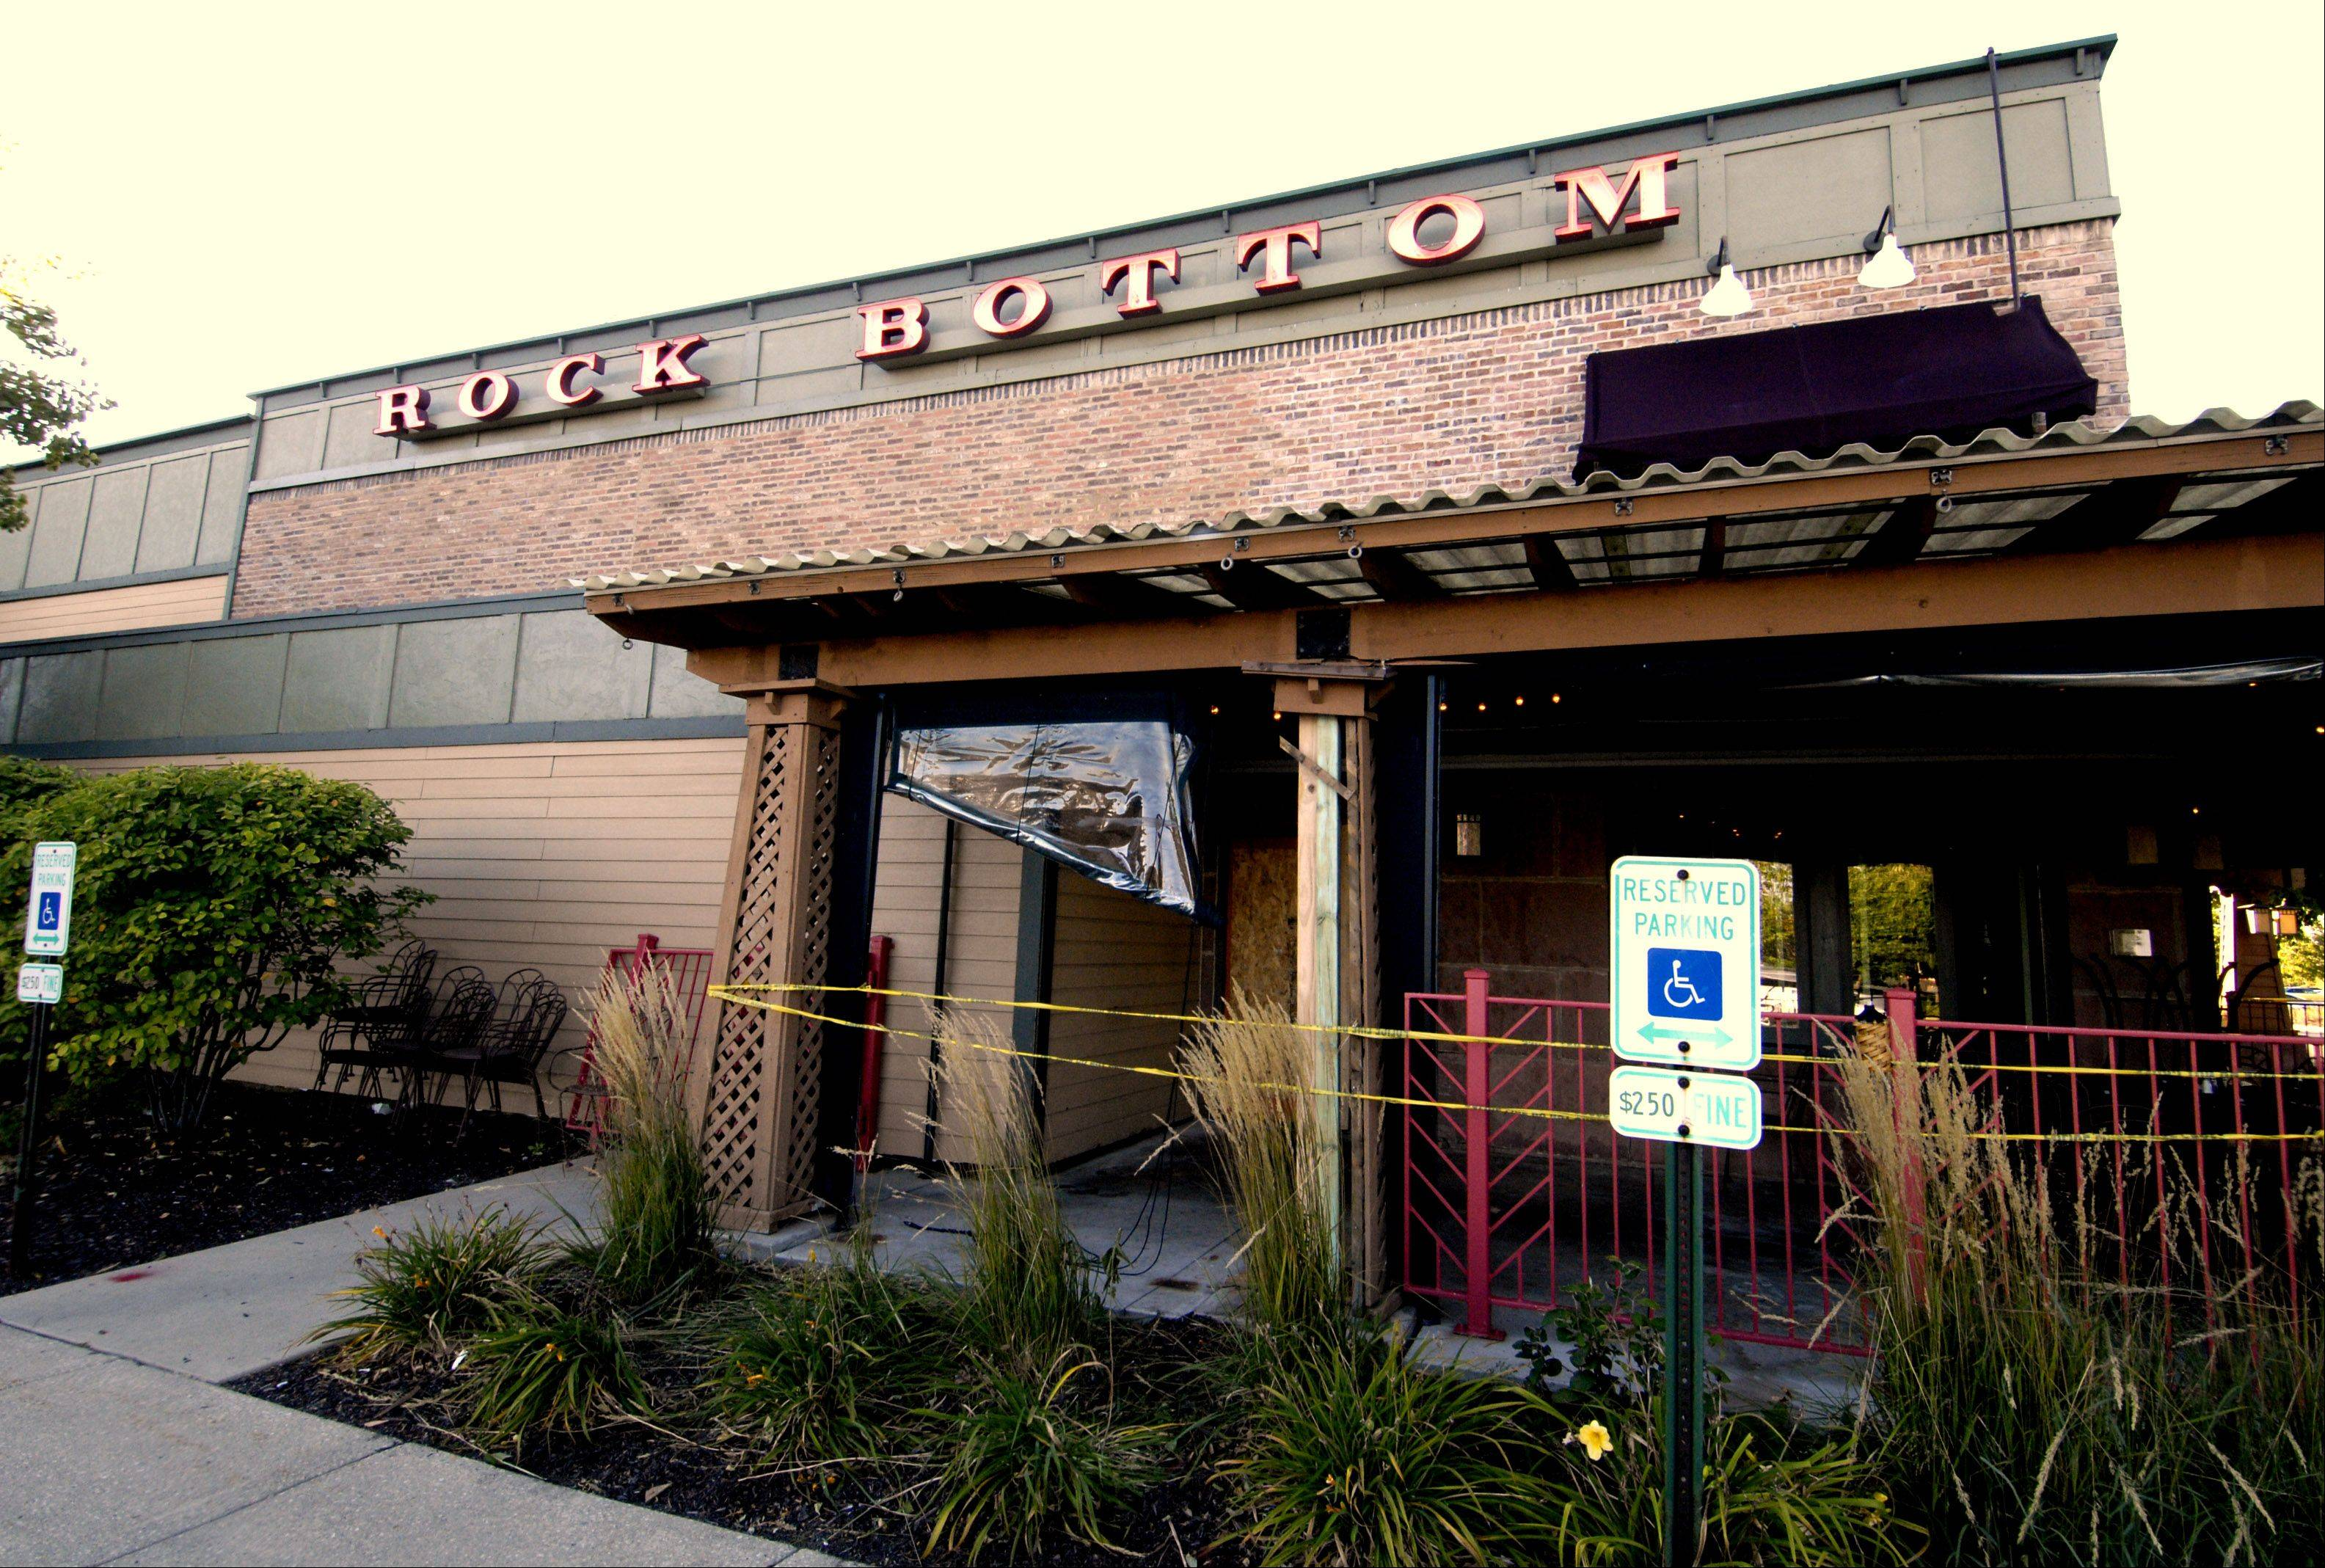 Police say a 71-year-old woman may have accidentally hit the gas pedal when parking at Rock Bottom Brewery restaurant in Warrenville, injuring five people.